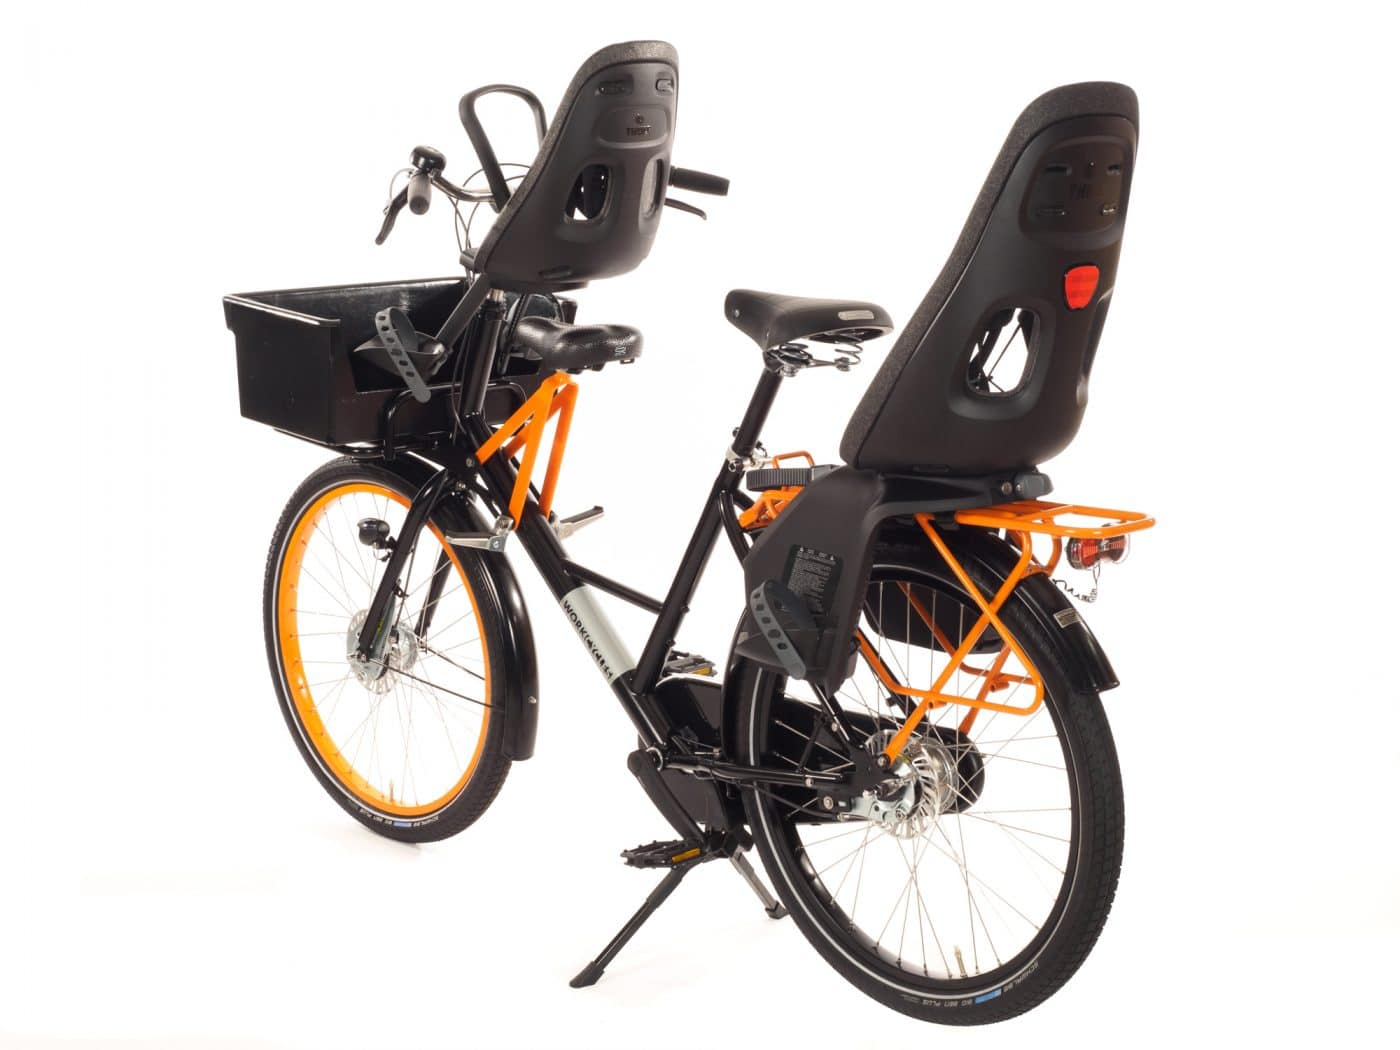 The WorkCycles Fr8 Junior, Yepp Mini, MT crate child (for Yepp mini), Qibbel Rear Seat